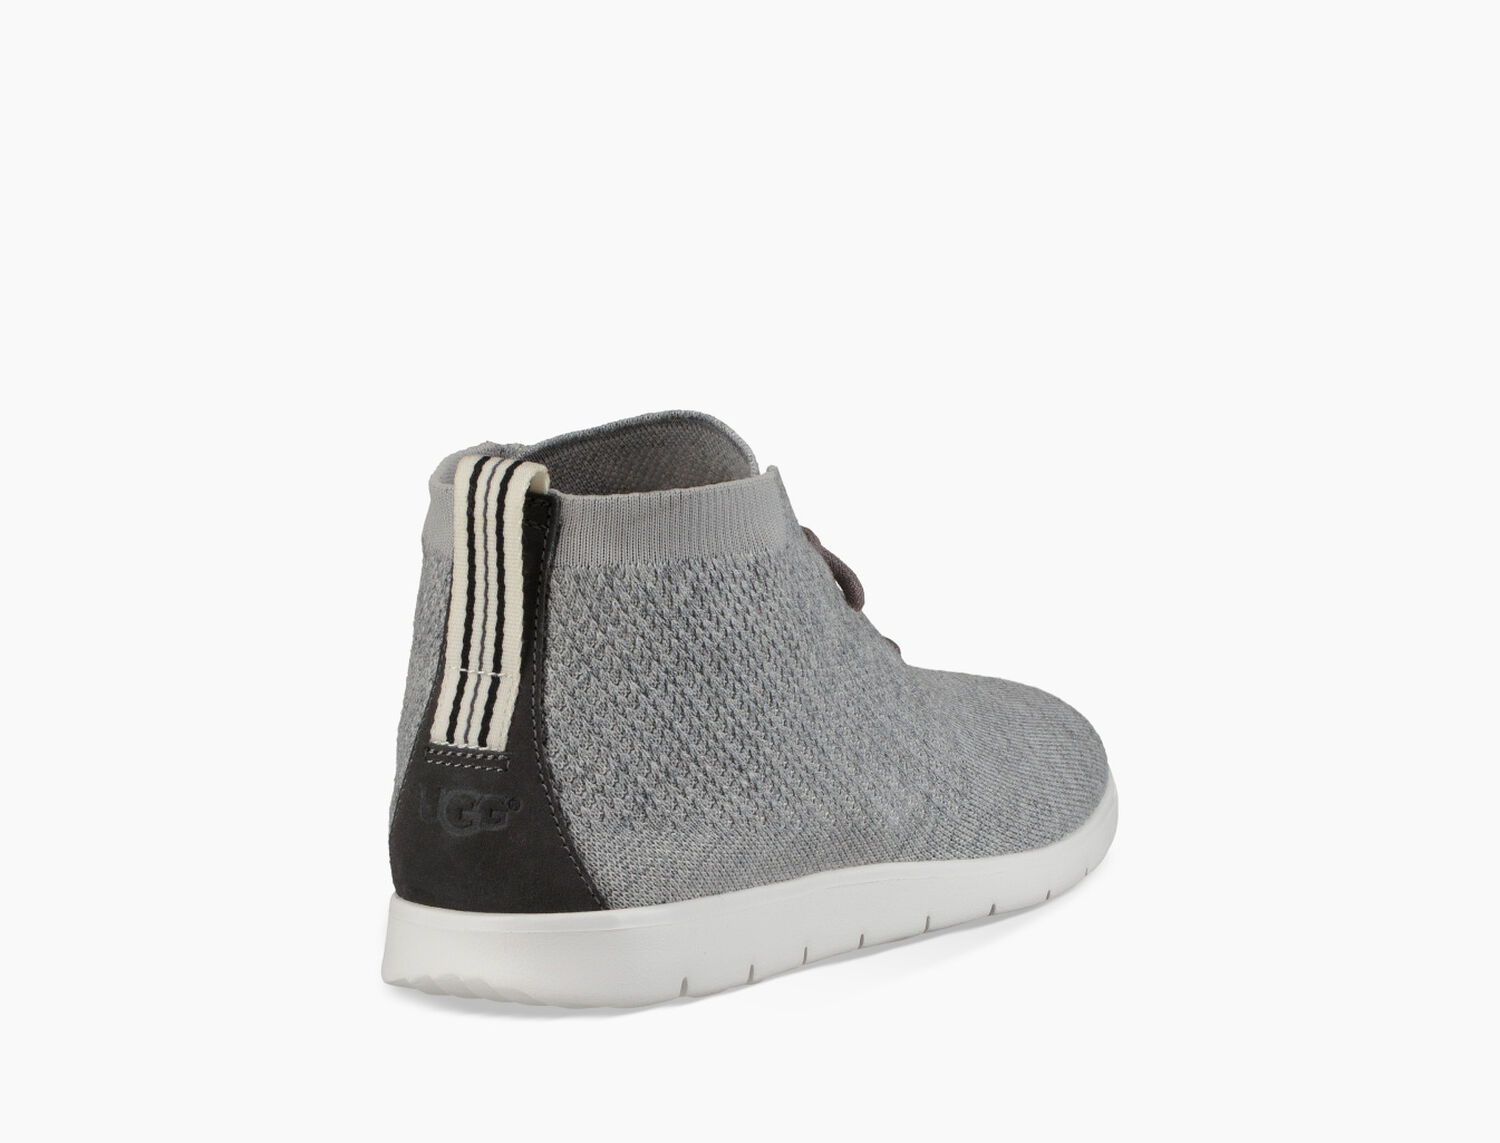 6abdc71a608 Men's Share this product Freamon HyperWeave Chukka